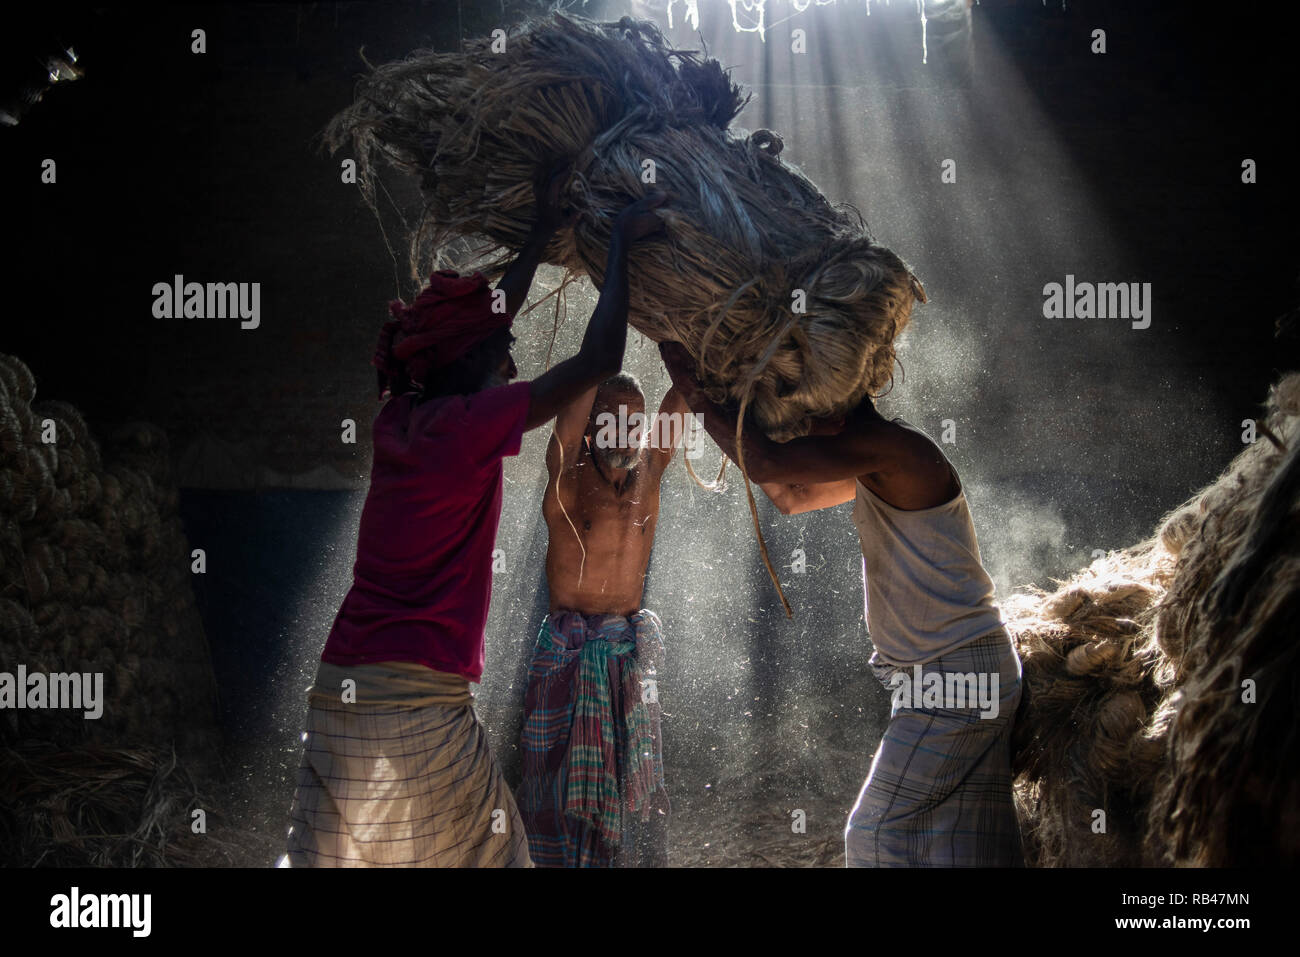 Narayanganj, Bangladesh. 6th Jan 2019. Jute mill workers seen helping each other while working. Bangladesh is known for its Jute. In recent years Bangladesh and many other countries considered jute as a new possibility to replace many daily goods, notably making bags out of jute to replace plastics Credit: SOPA Images Limited/Alamy Live News Stock Photo